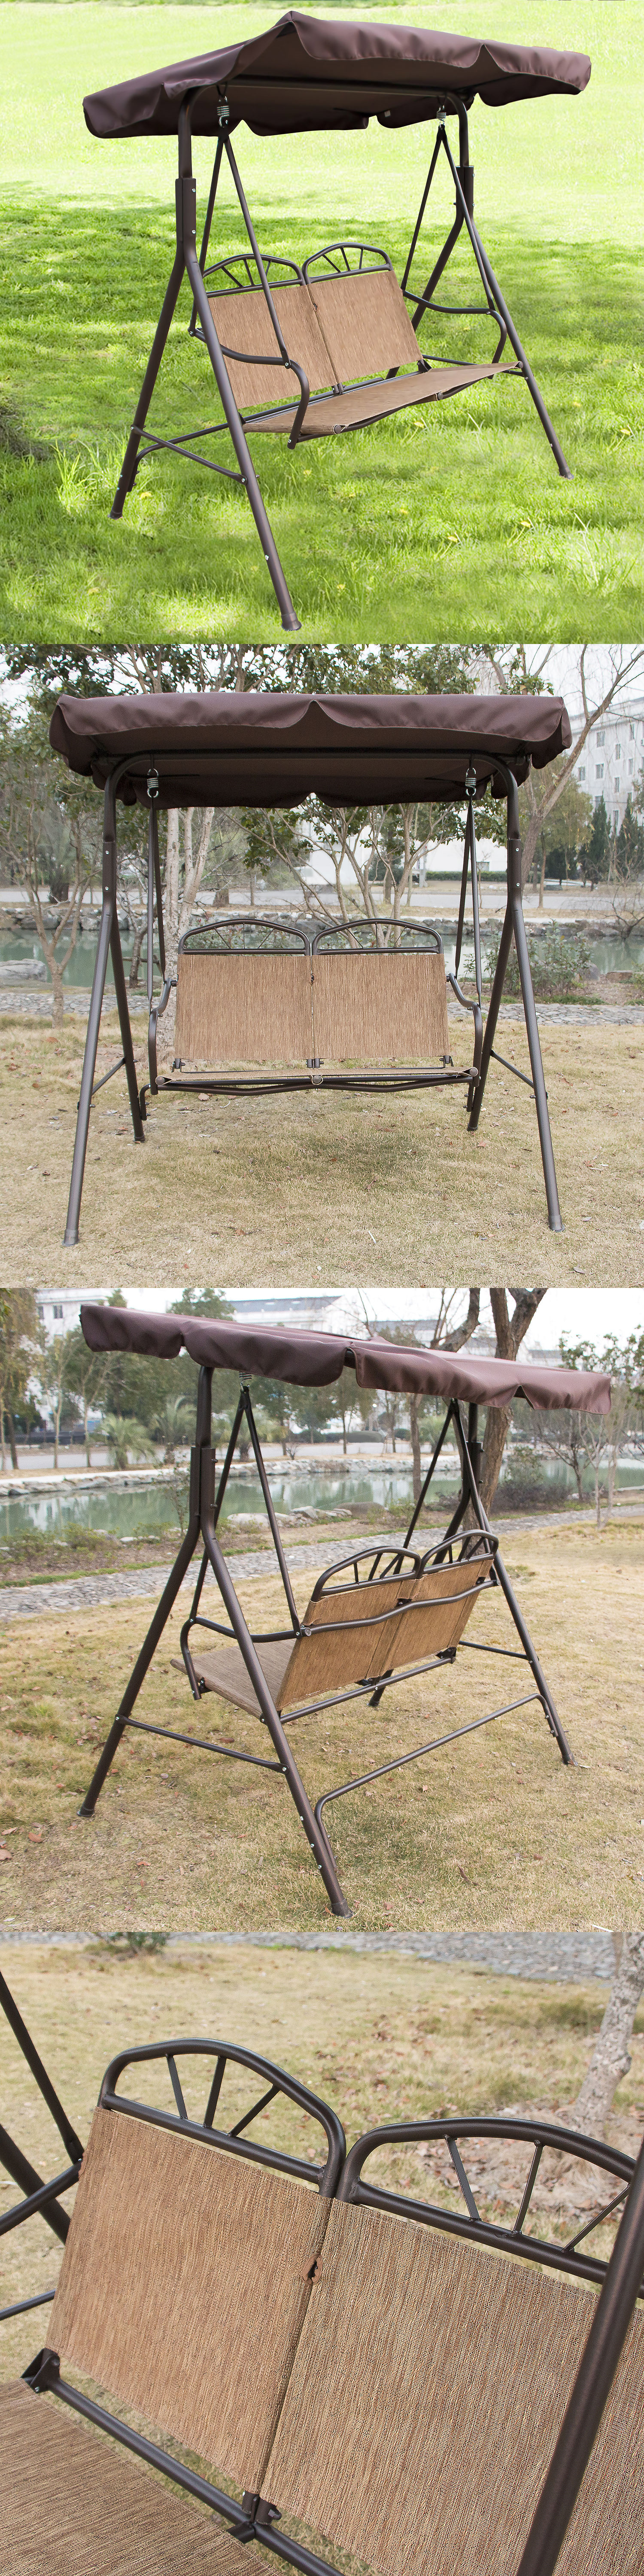 Lovely Swings 79700: Outdoor Patio Swing Canopy Chair Awning Yard Furniture 2  Person Bench Seat